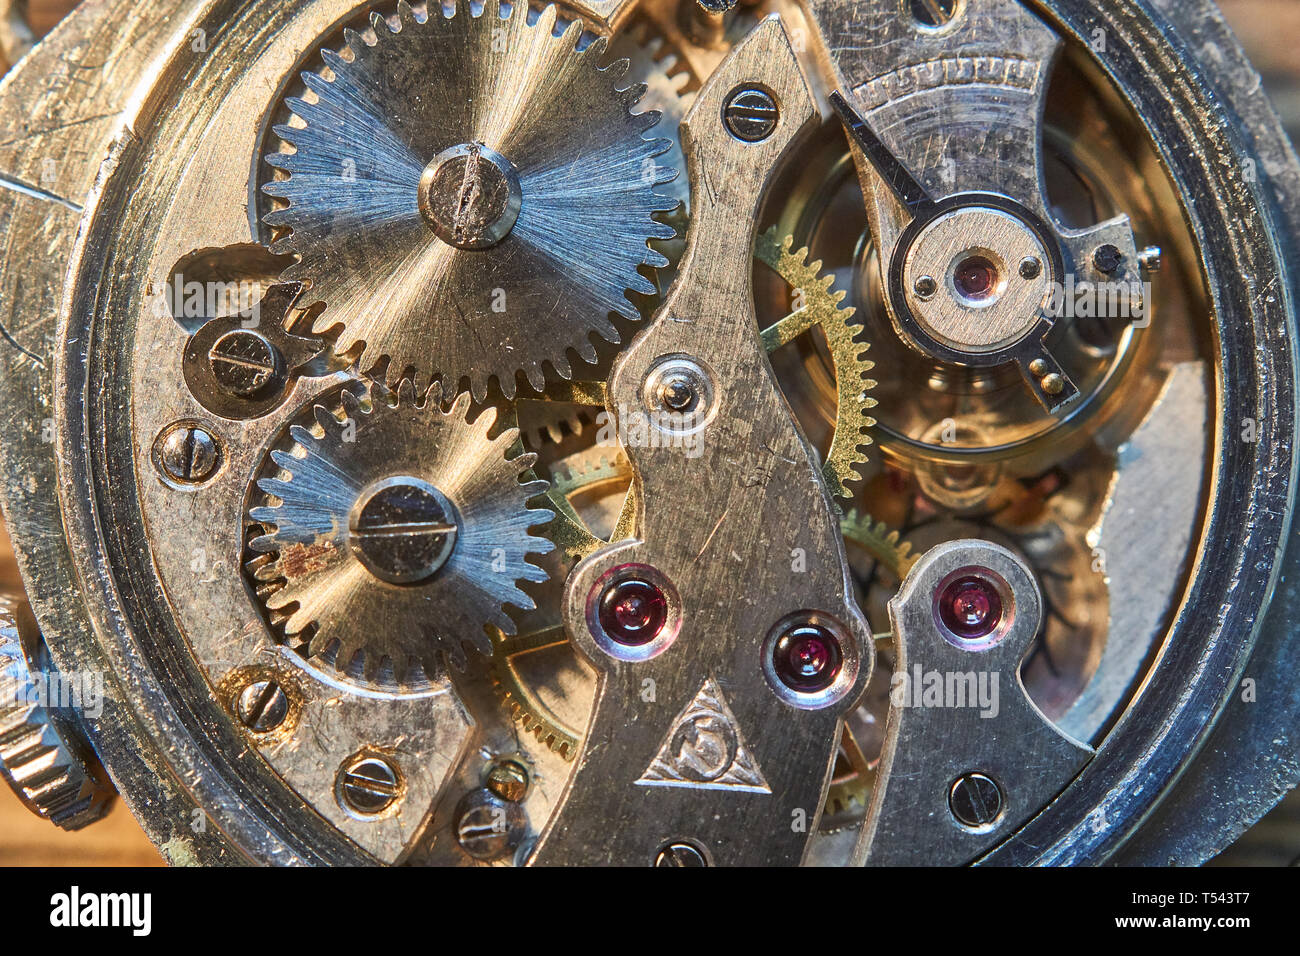 macro images of a vintage watch movement - Stock Image